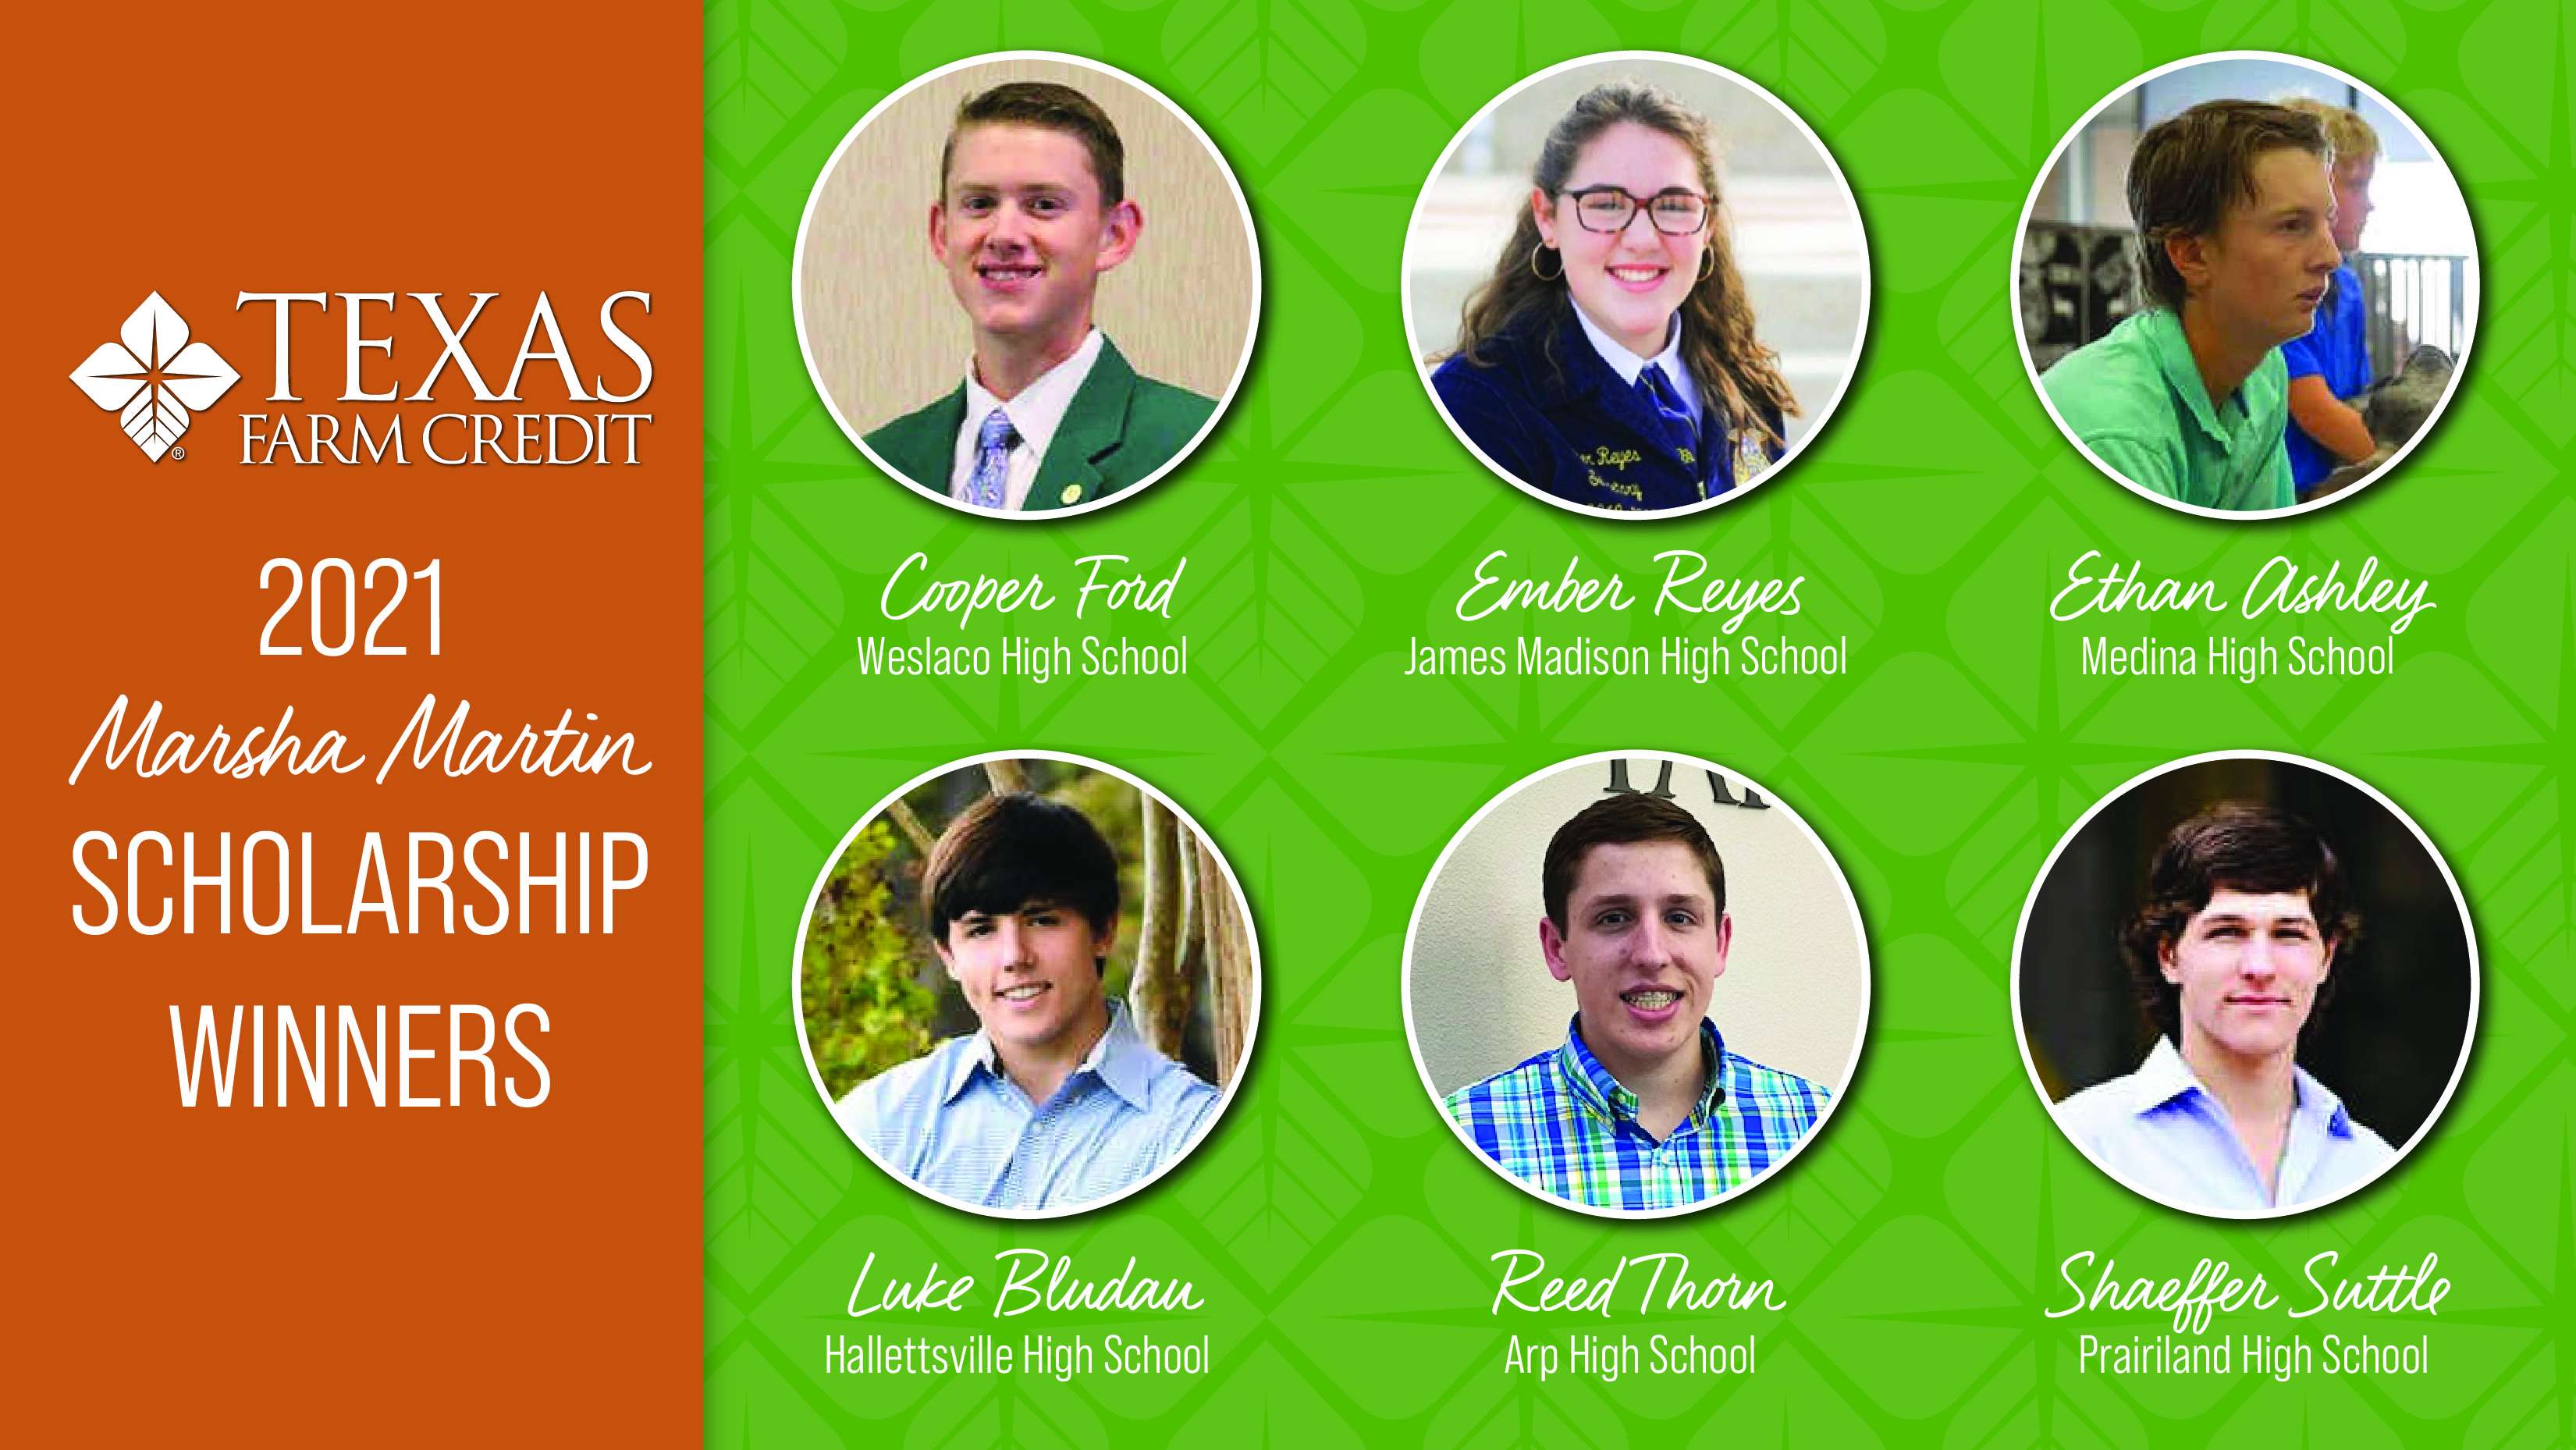 Texas Farm Credit Awards Scholarships to Deserving Ag Students